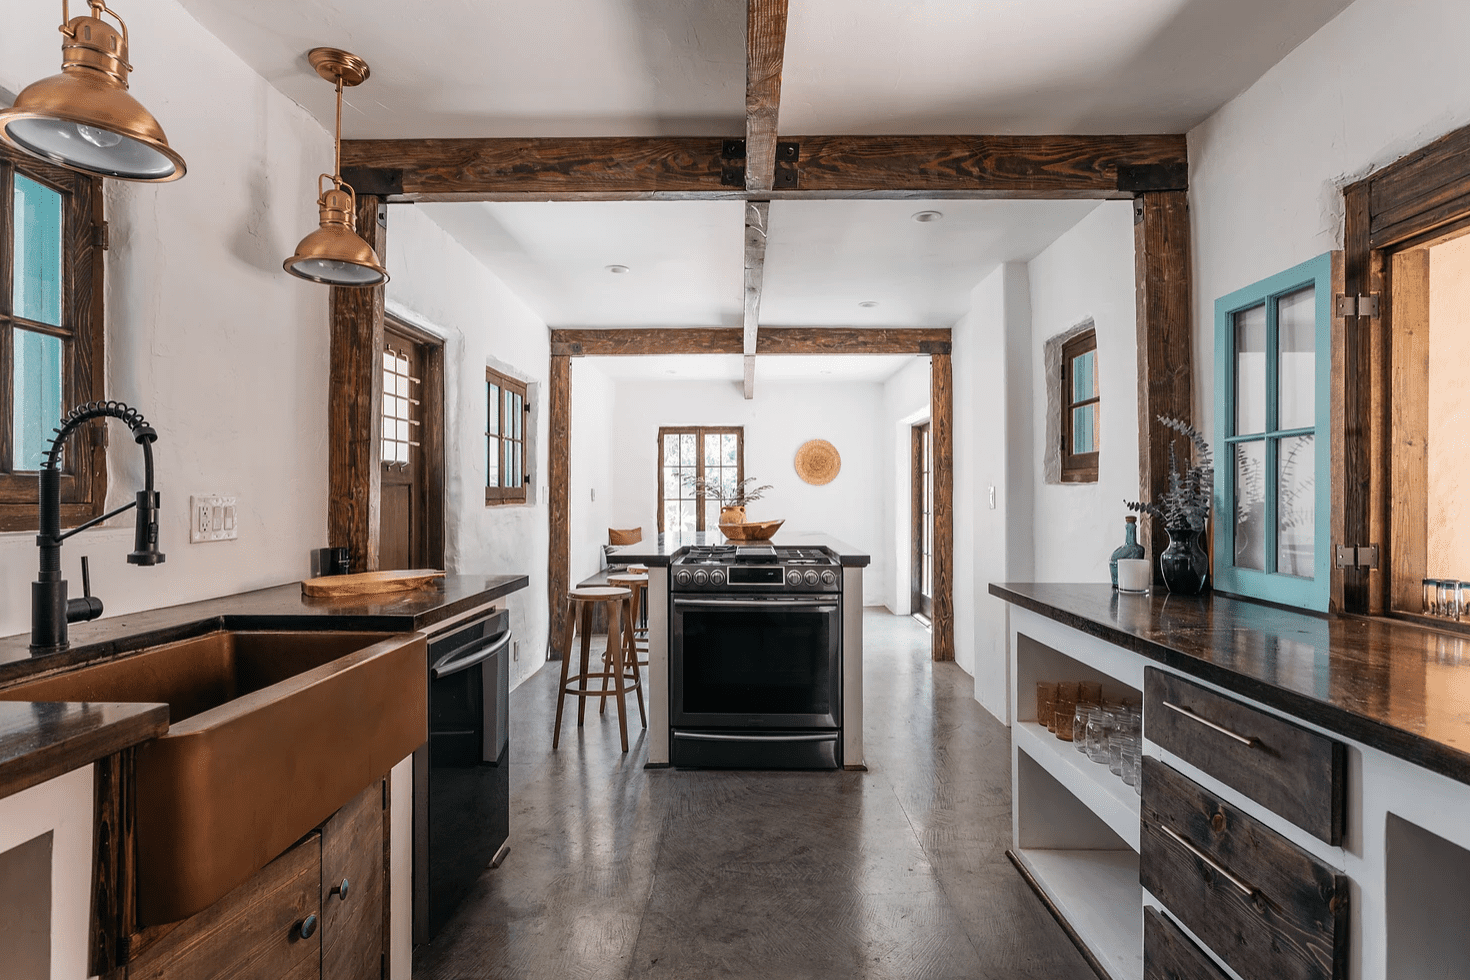 An open-concept kitchen with ceilings lined with exposed wood beams